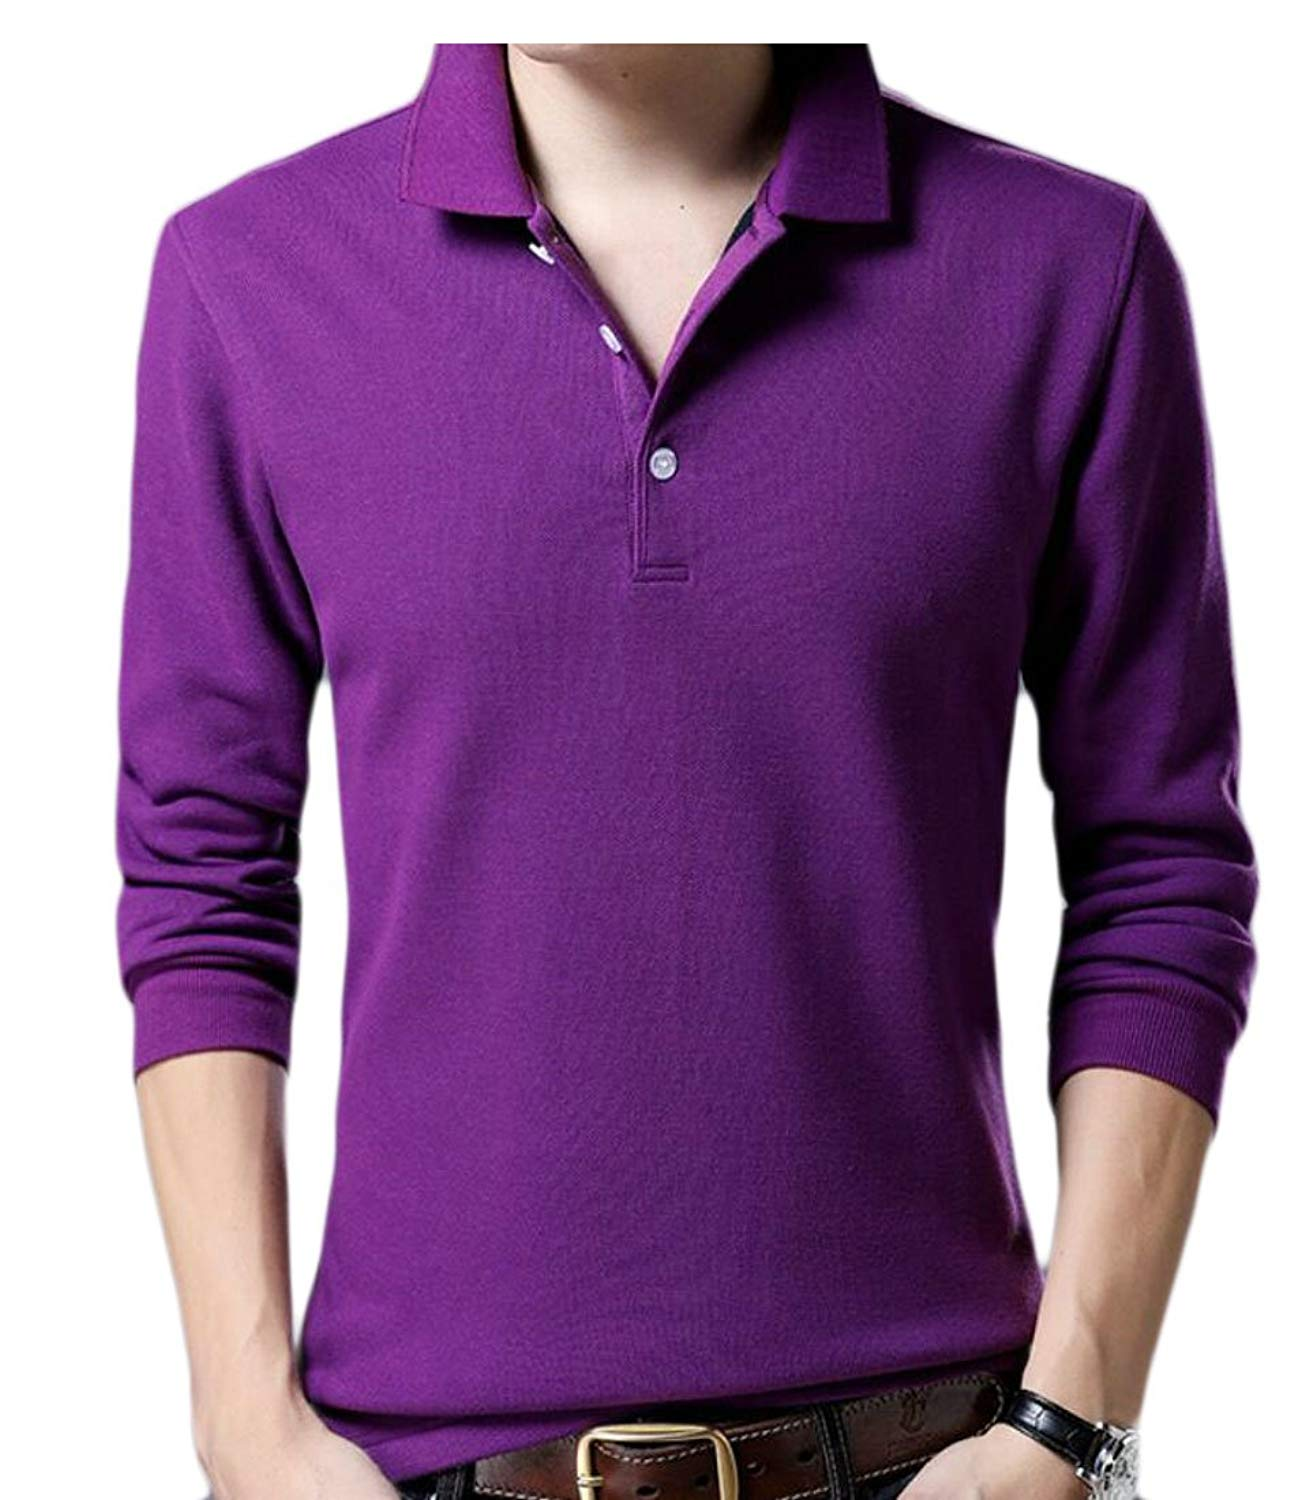 c18eb65e9d54d Get Quotations · WSPLYSPJY Men s Warm Long Sleeve Solid Color Slim Fit Blouse  Tops Shirts Purple L